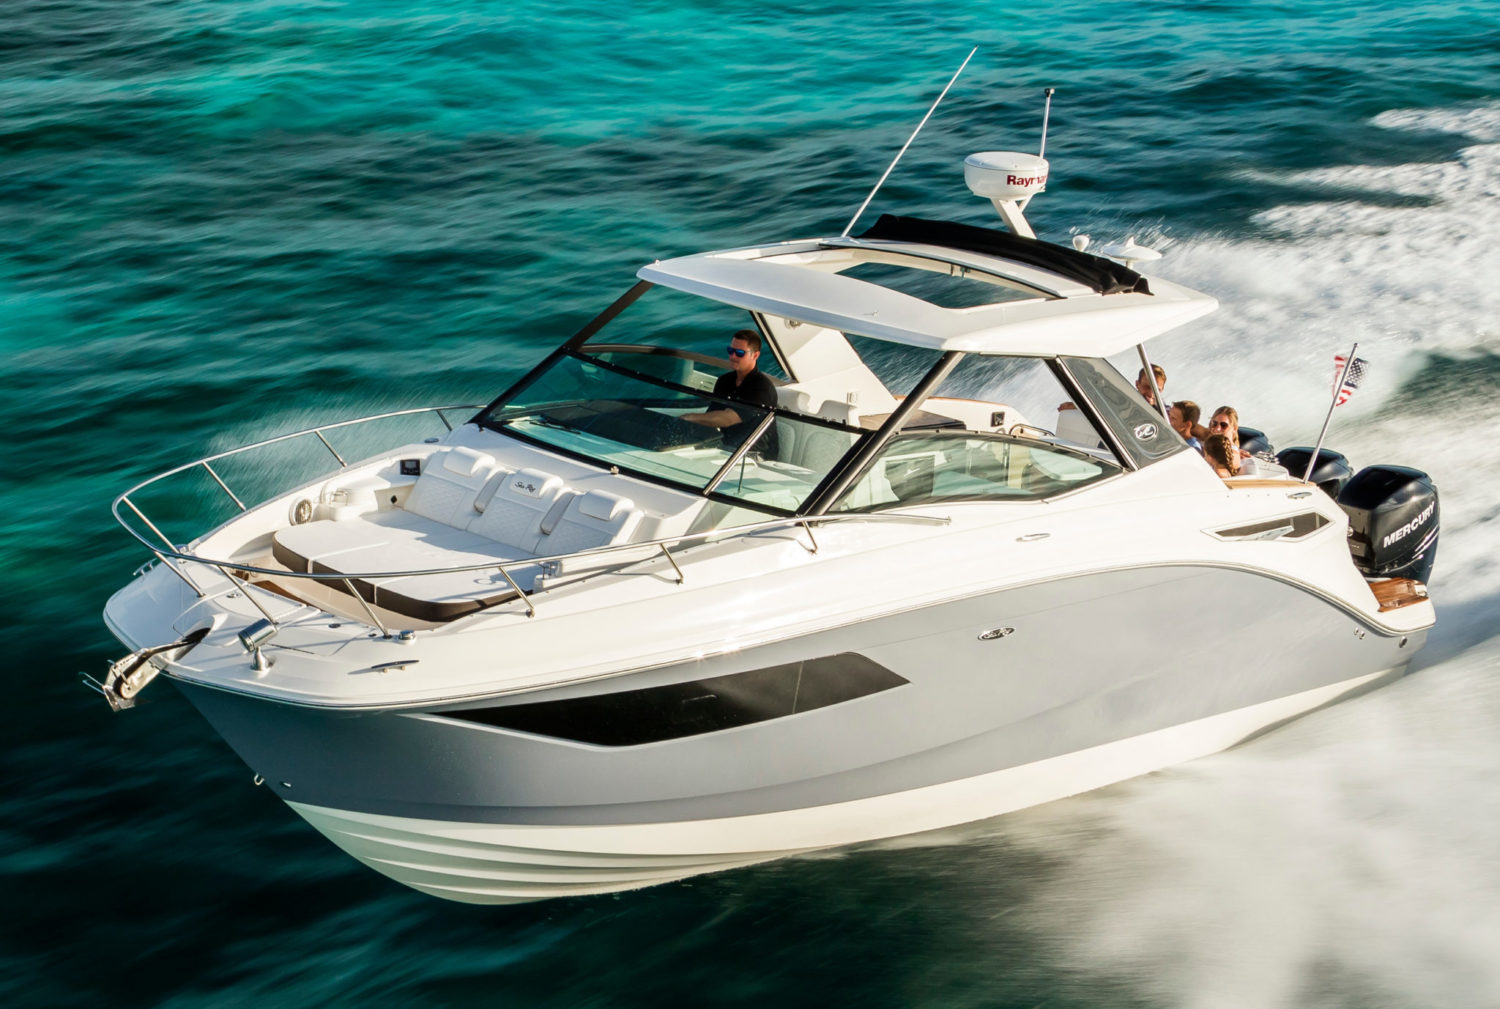 Sea Ray Just Launched The Sundancer 320 Outboard